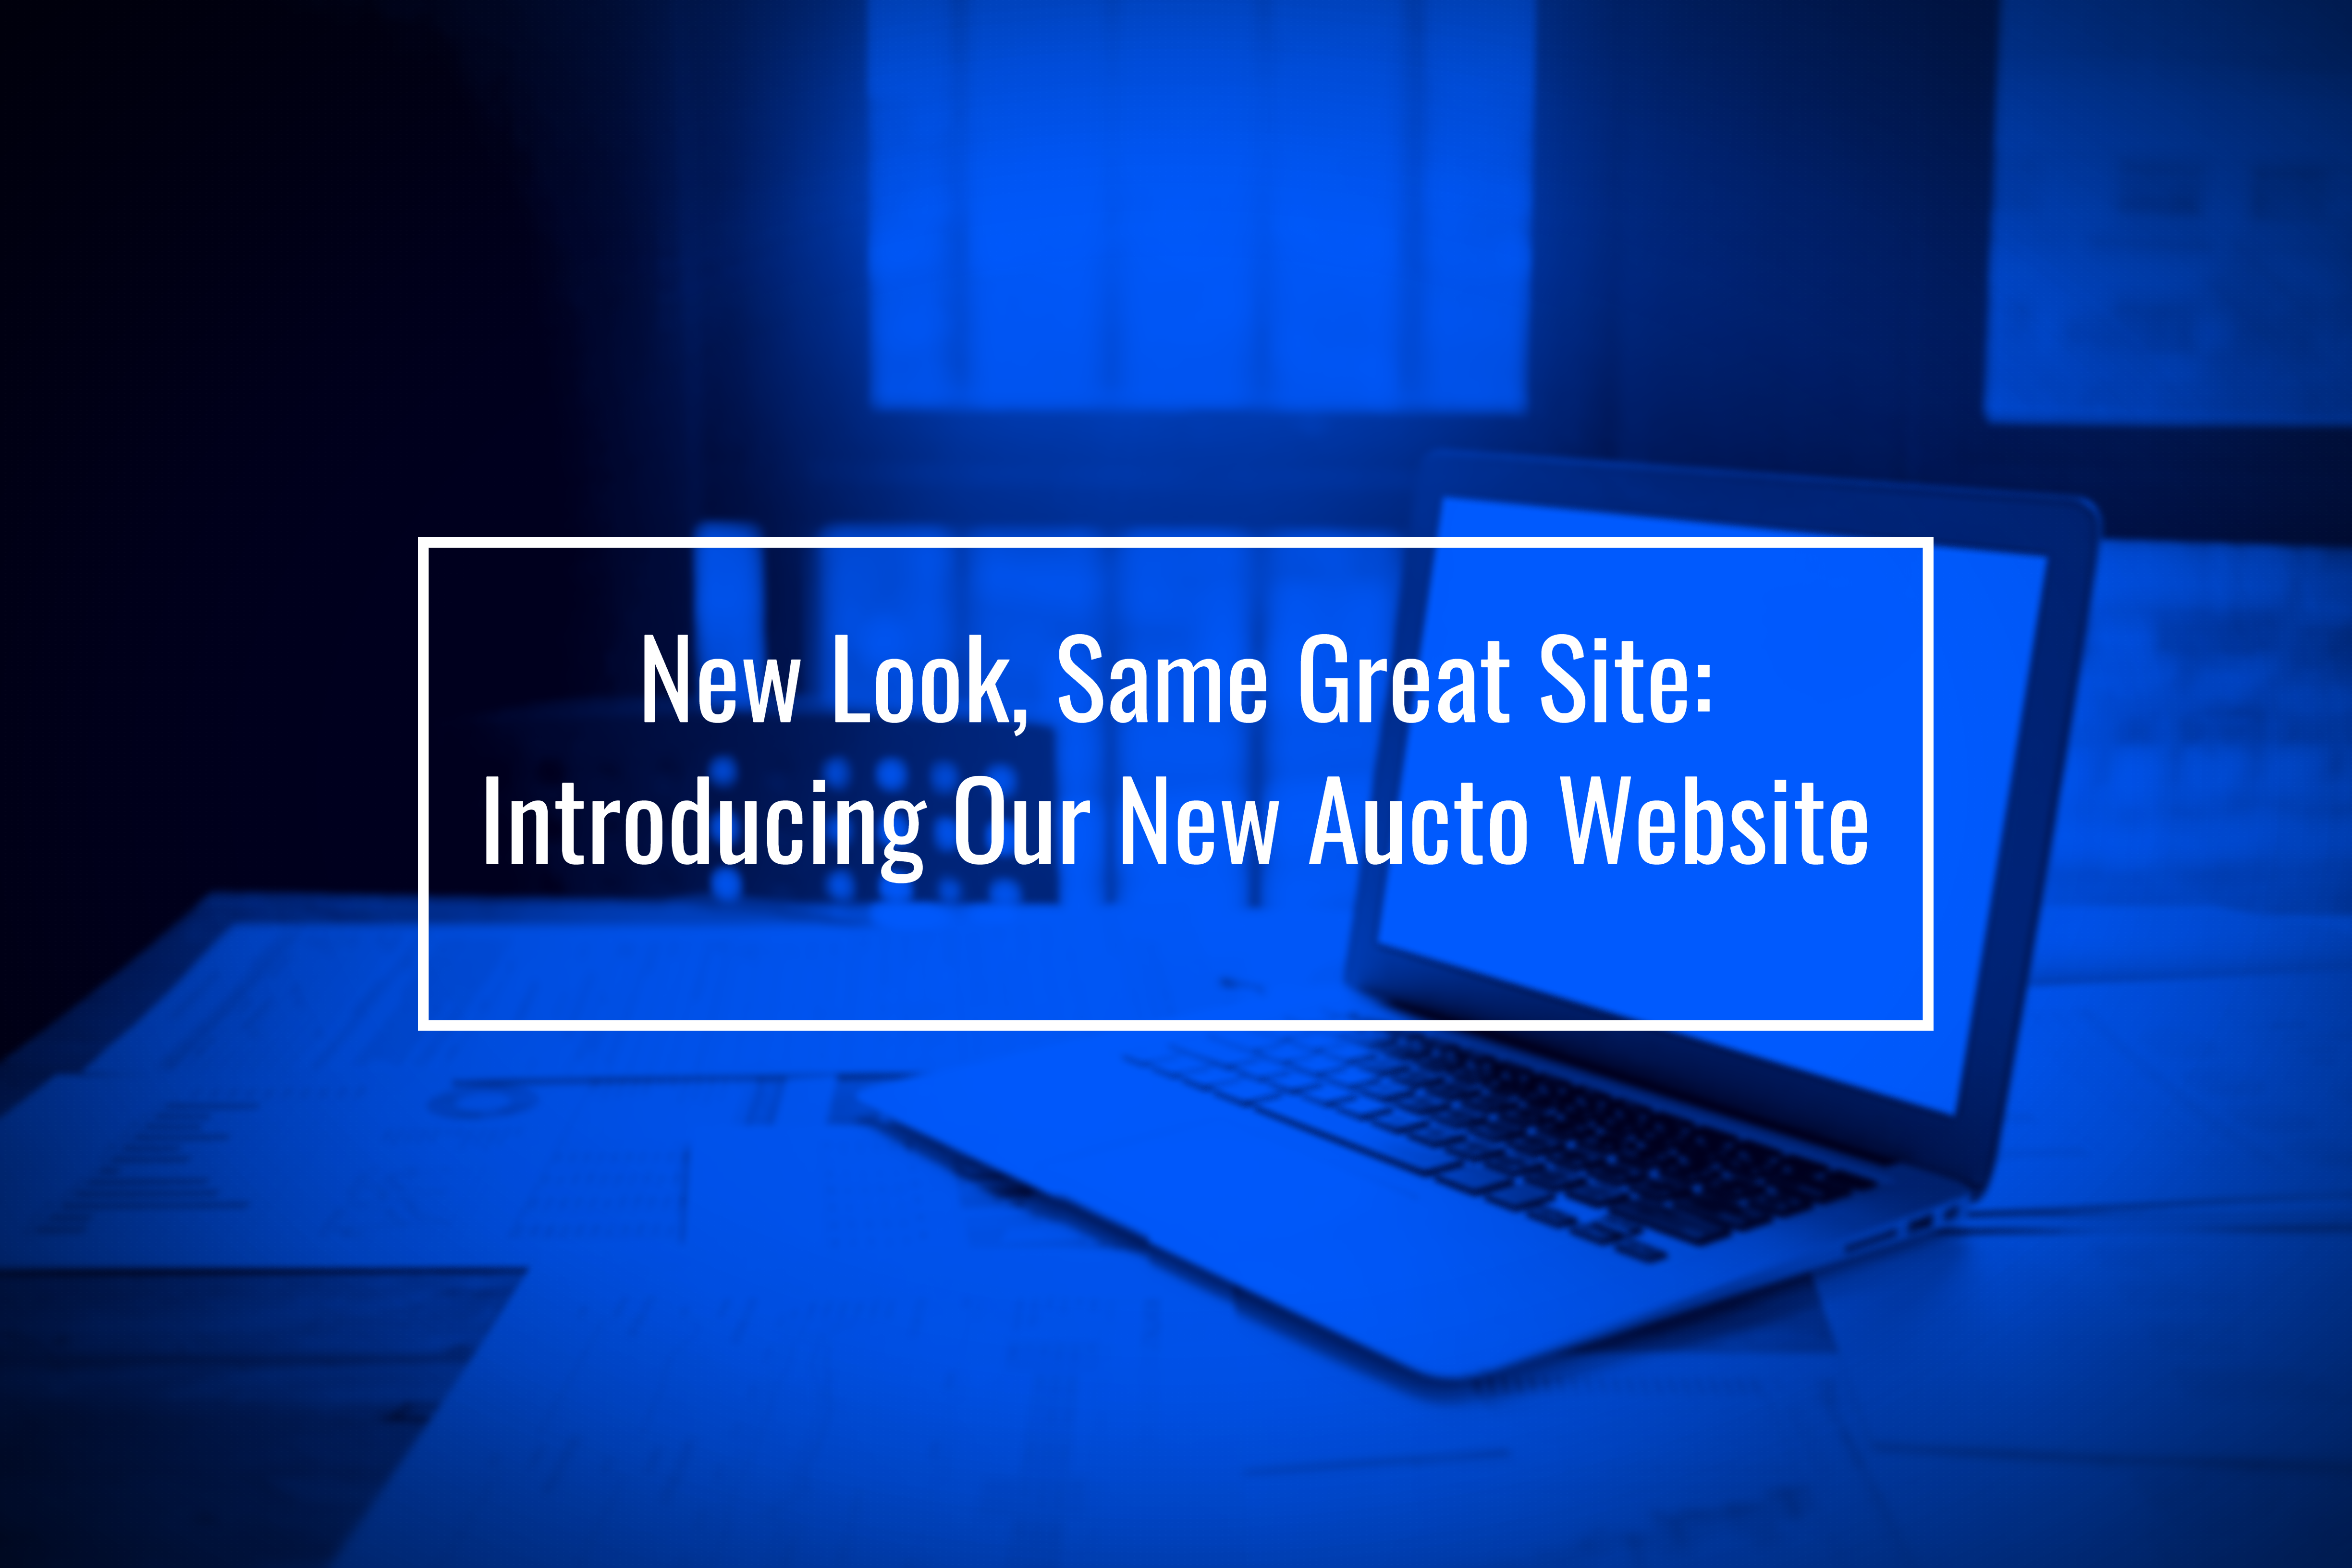 Our New Aucto Website is Live!